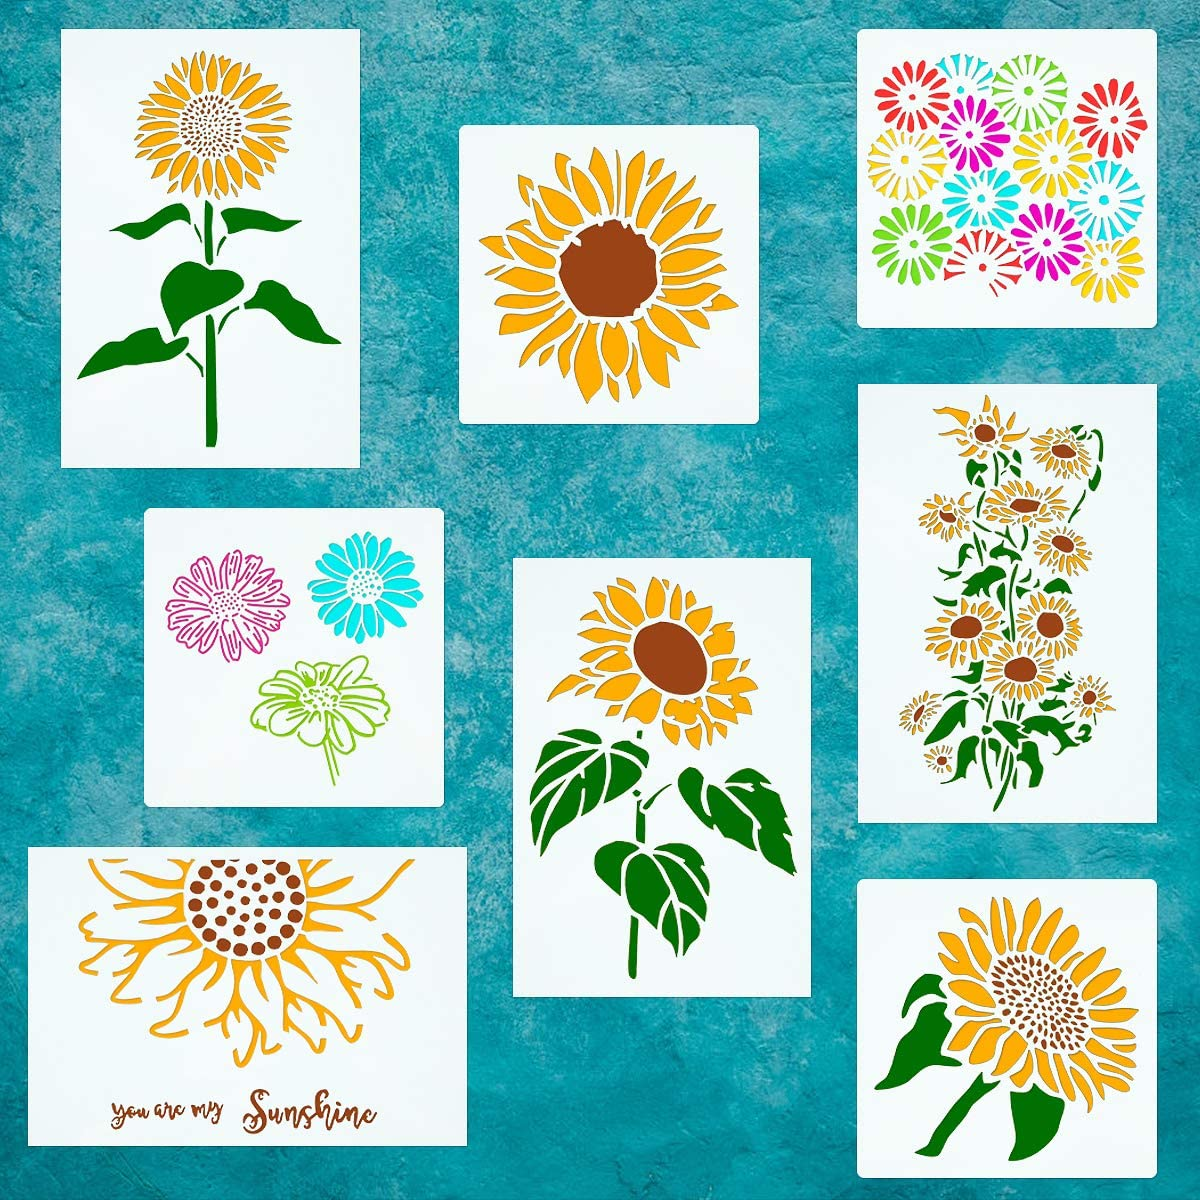 CINPIUK 8 Pack Sunflower Stencils Camomile Daisy Template for Painting on Wood DIY Fall Thanksgiving Home Decor